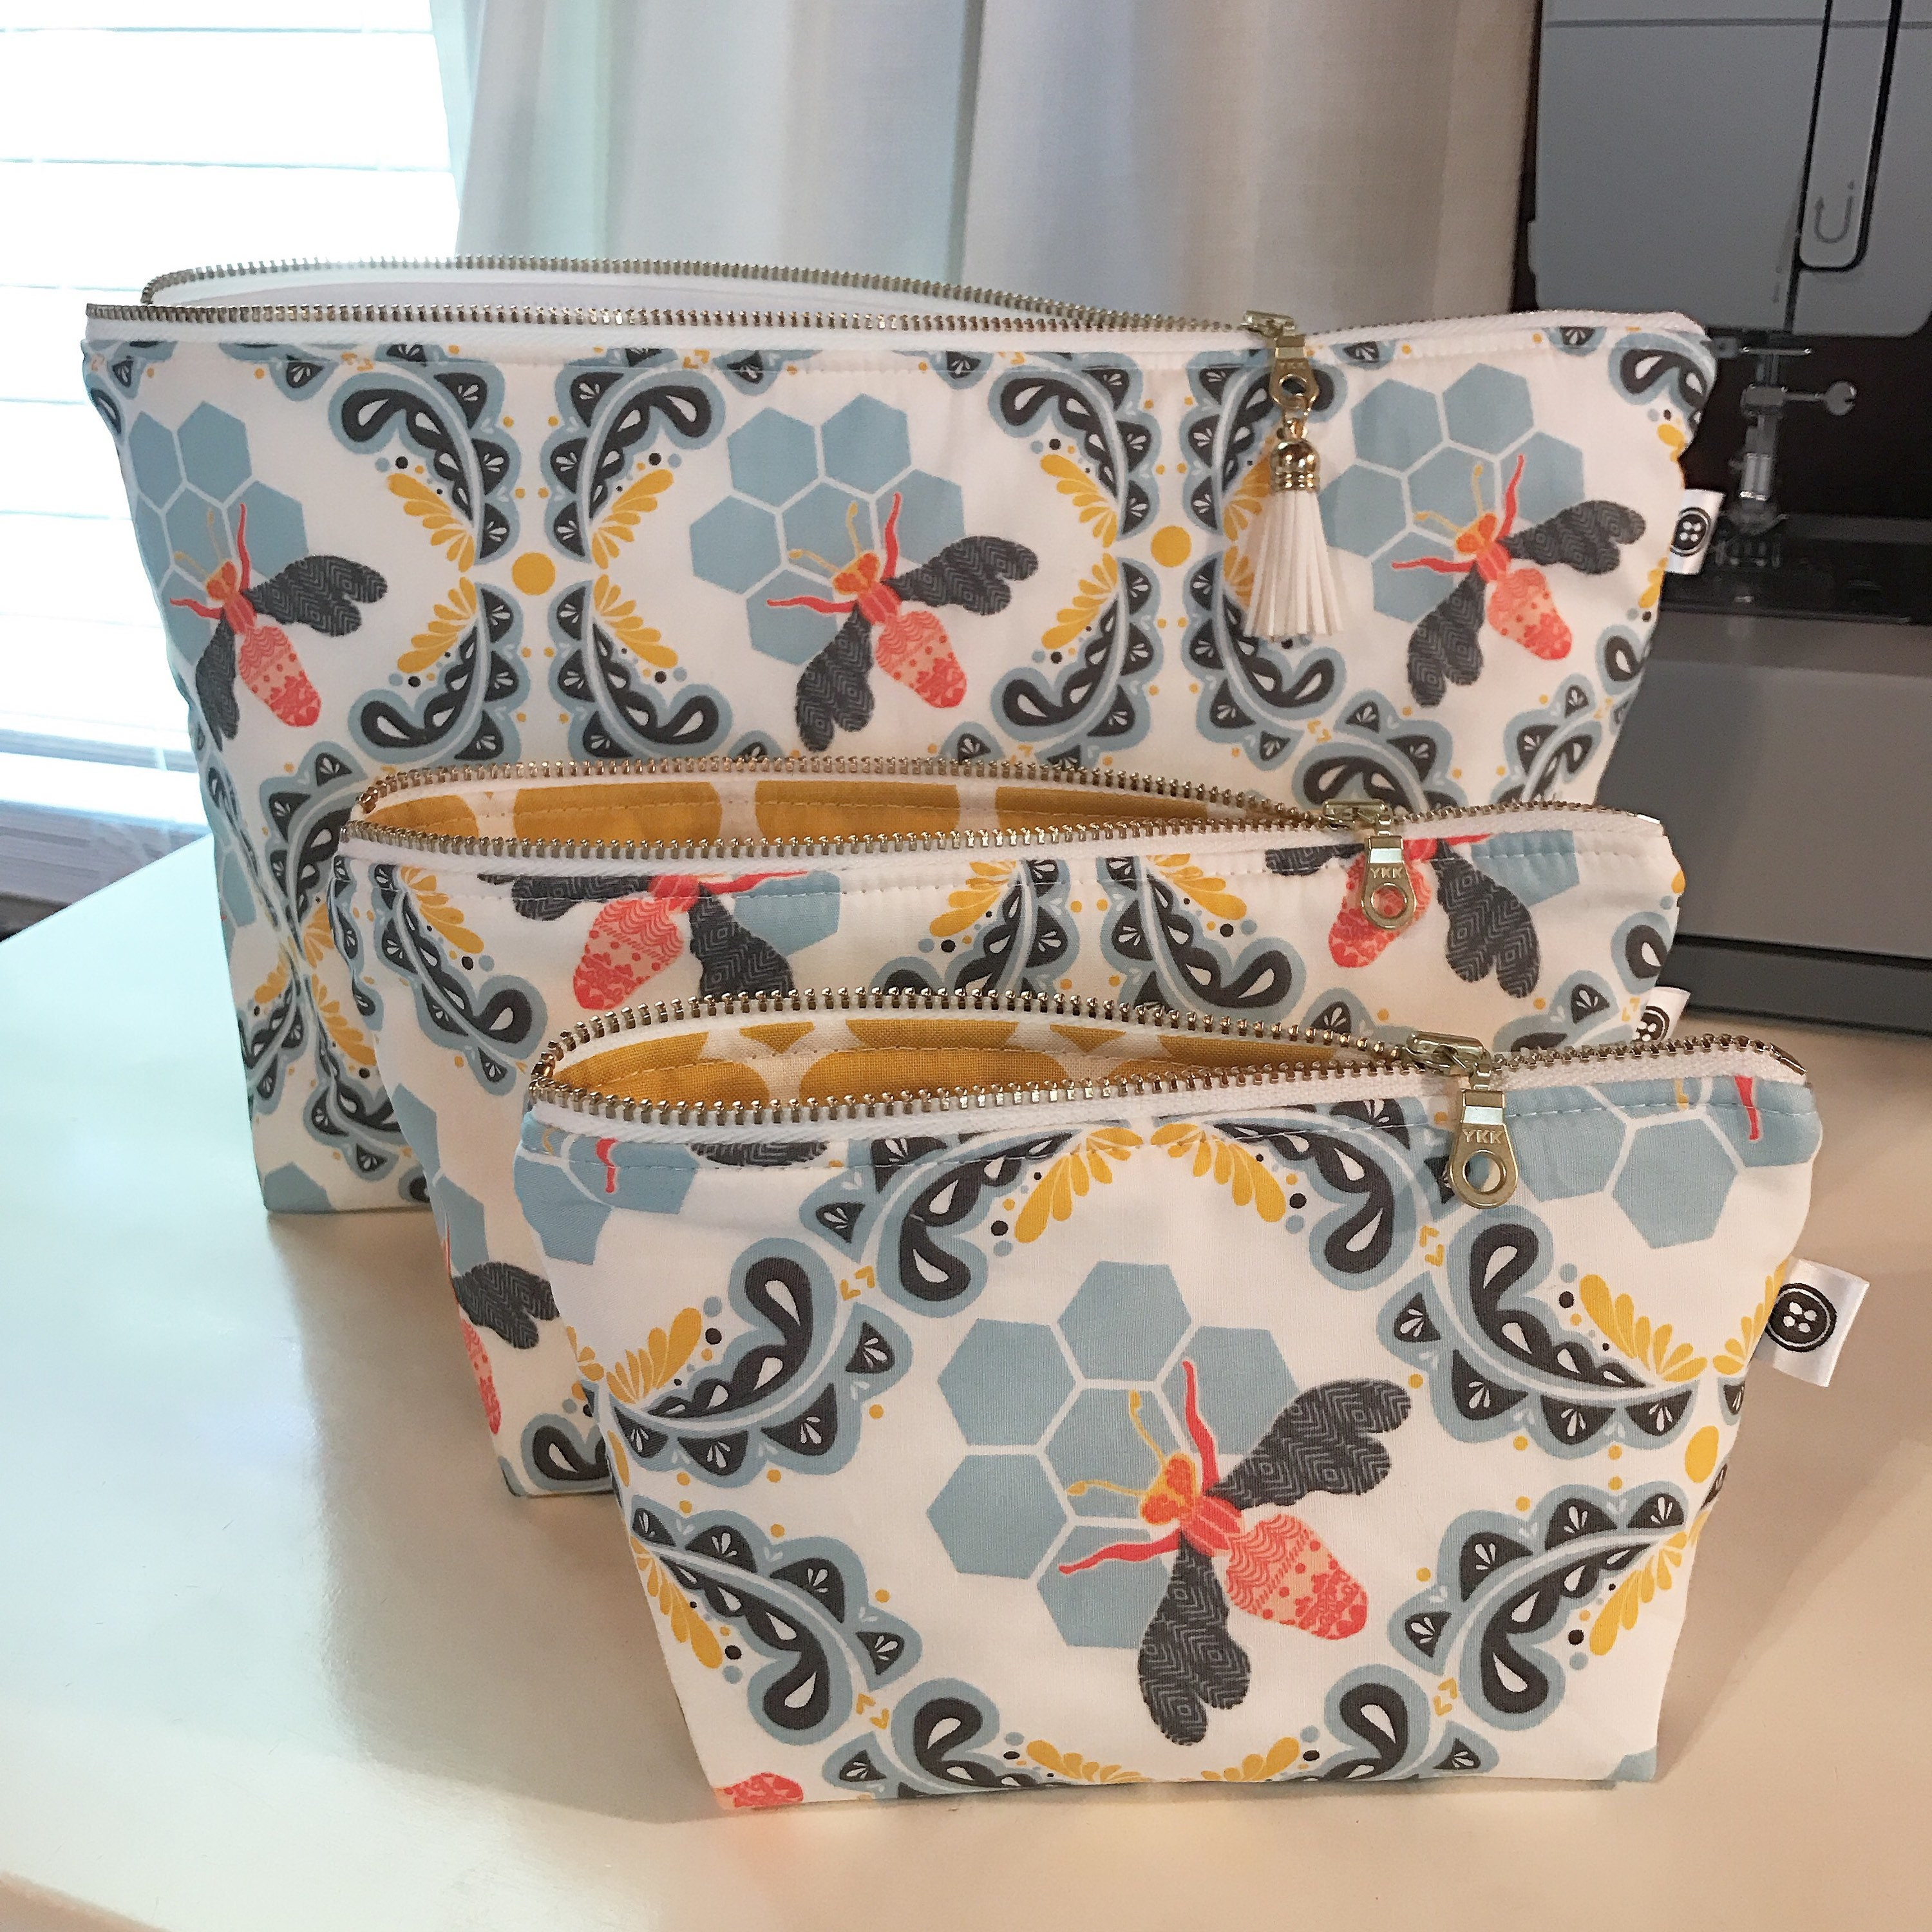 design your own make up bag made to order zipper pouch pencil